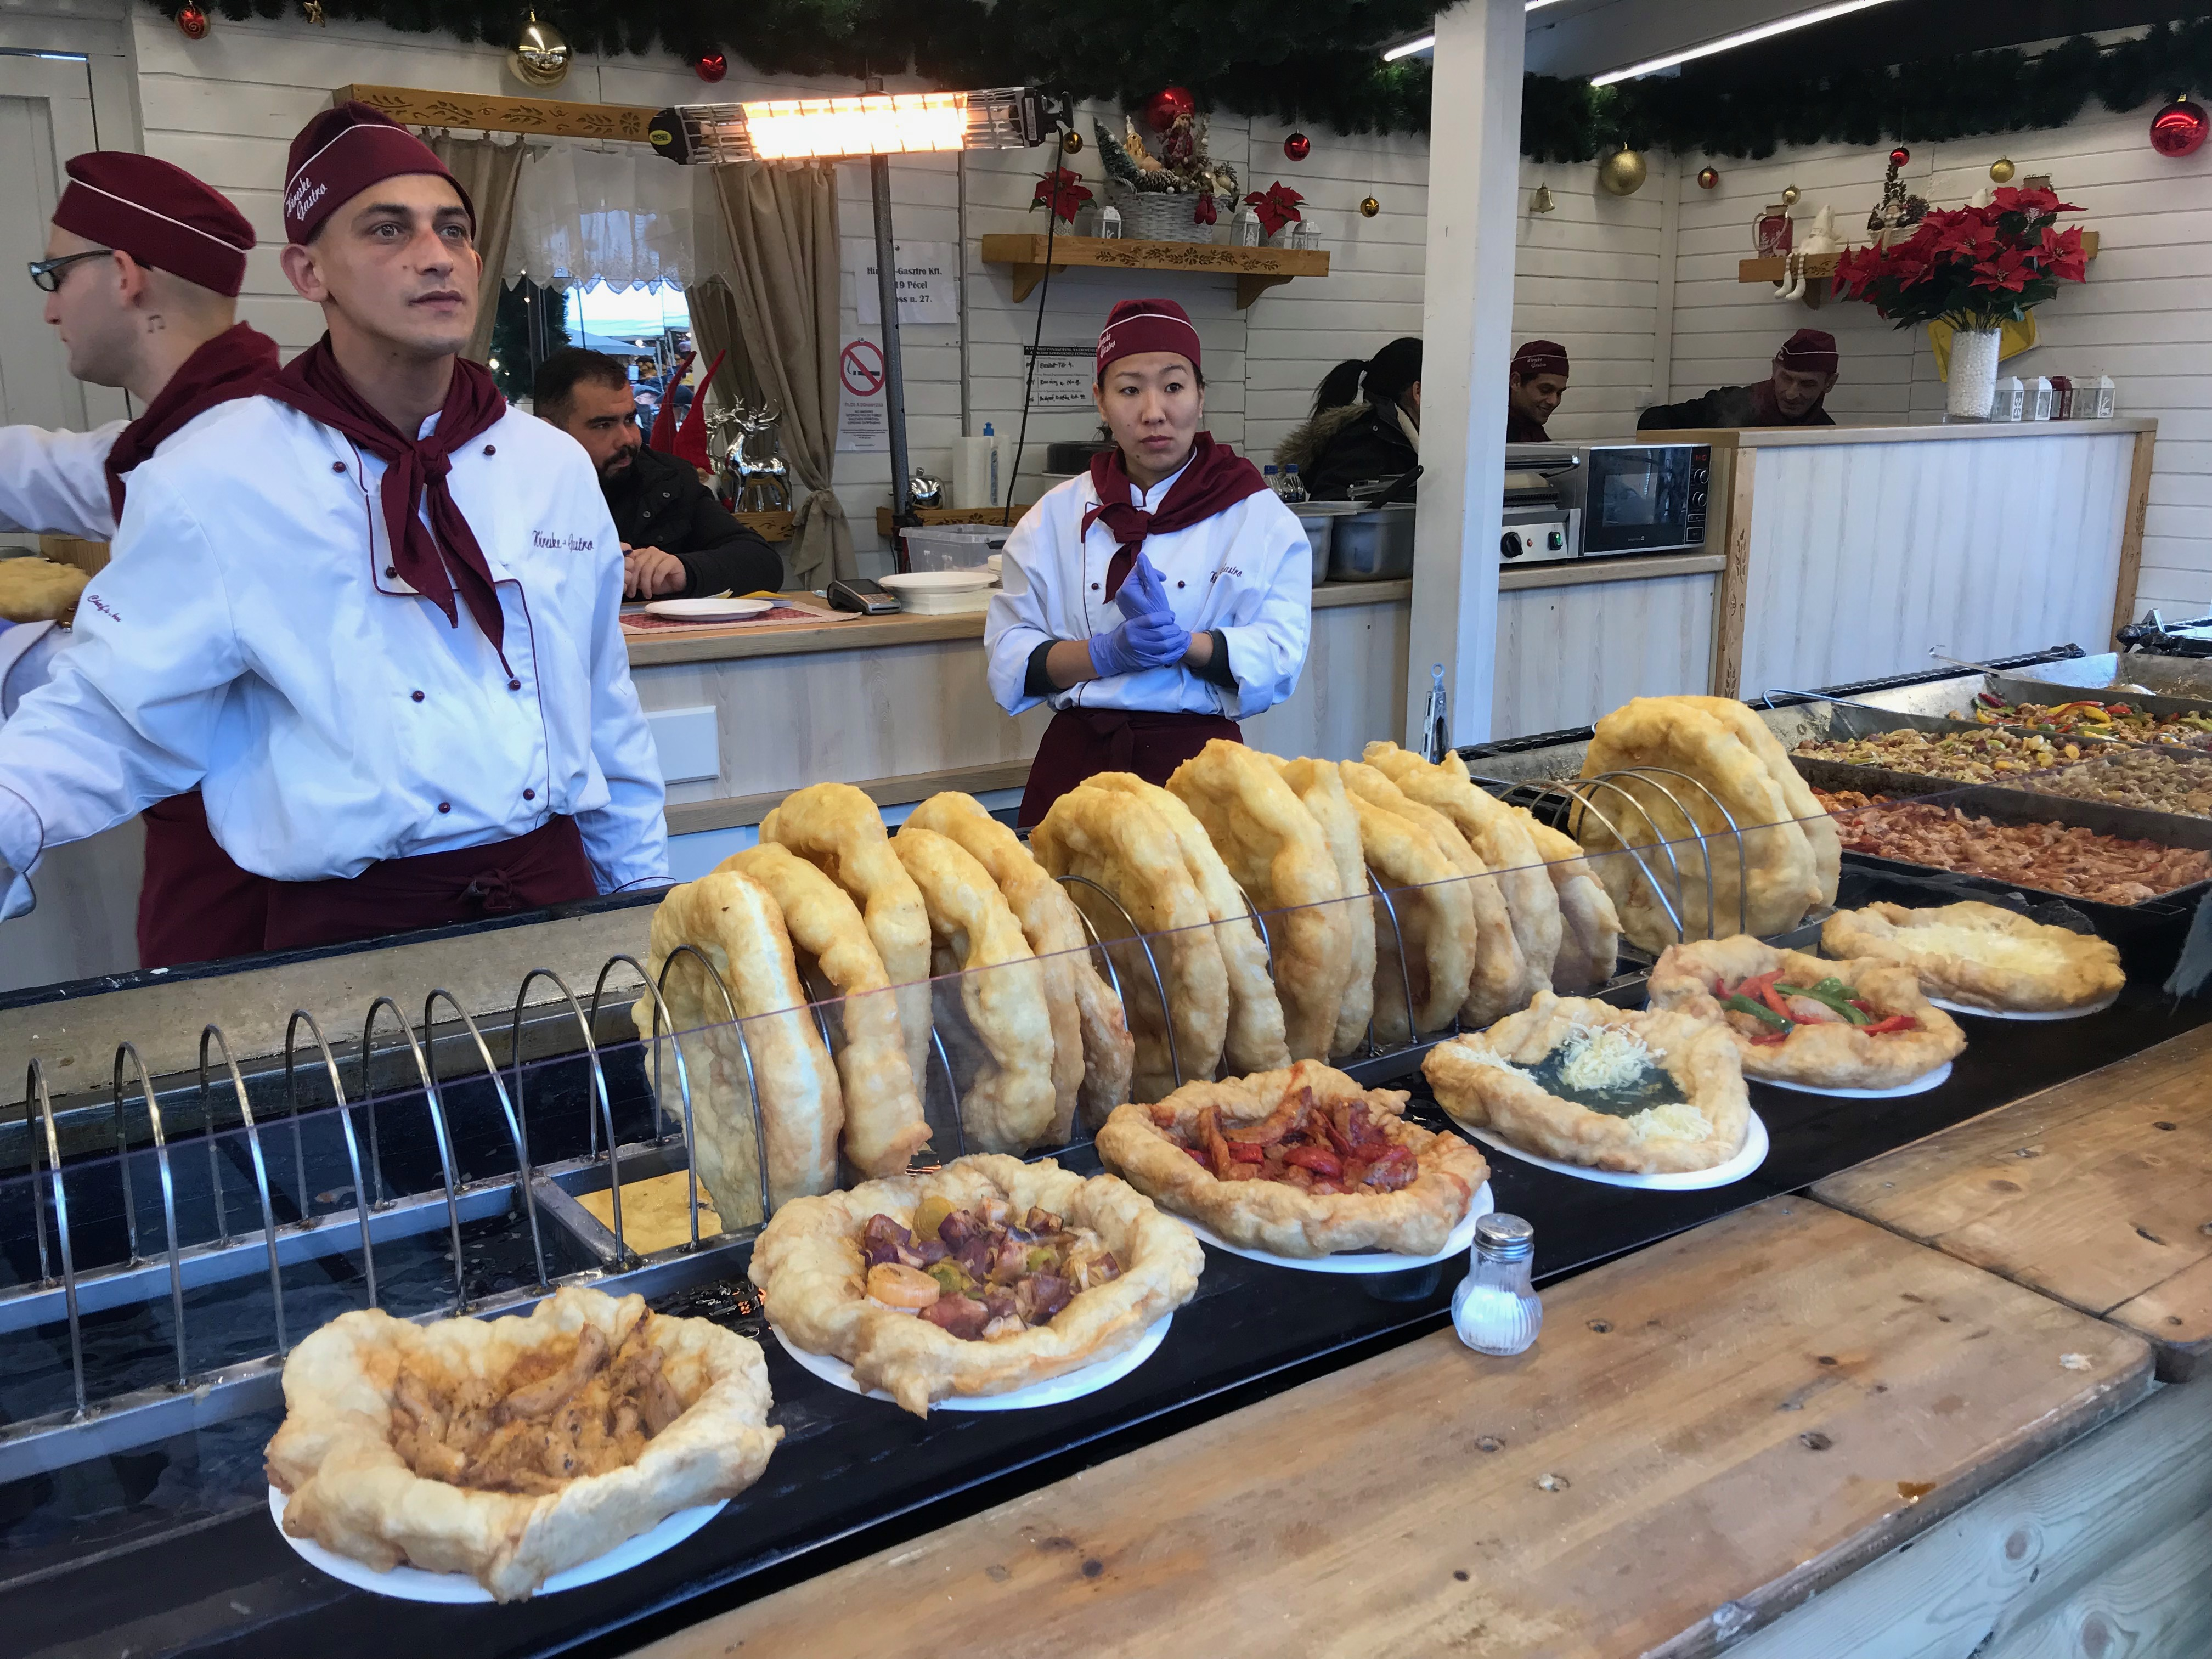 Langos lined up for eating in Budapest, Hungary, with their many different flavors